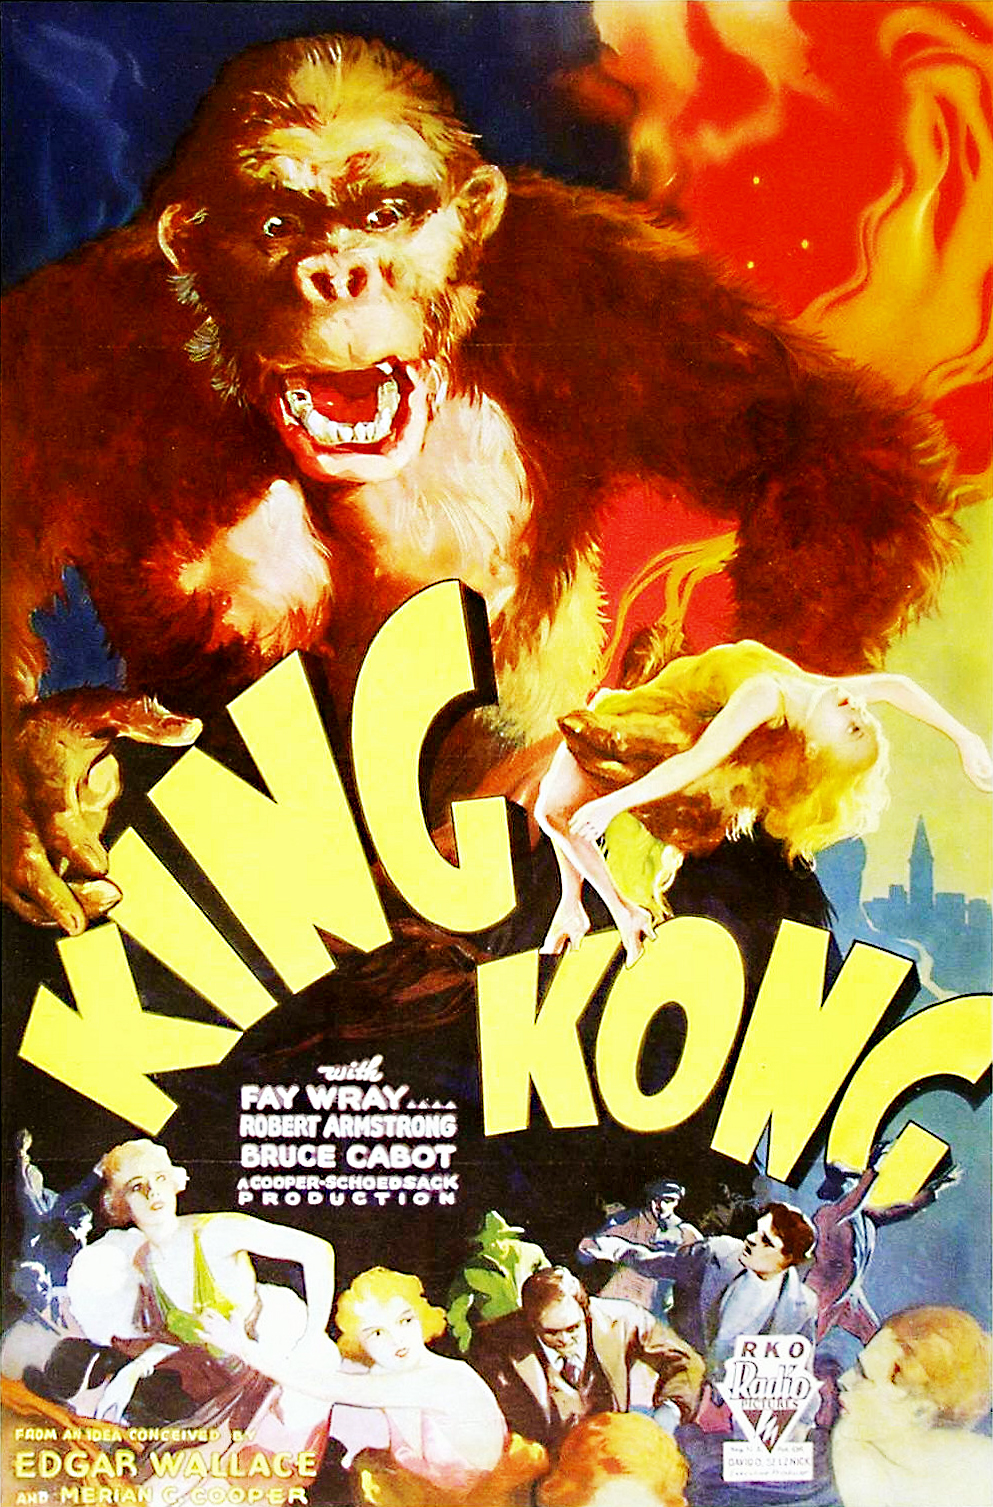 The Geeky Nerfherder Movie Poster Art King Kong 1933 Short Circuit Posters From Shop